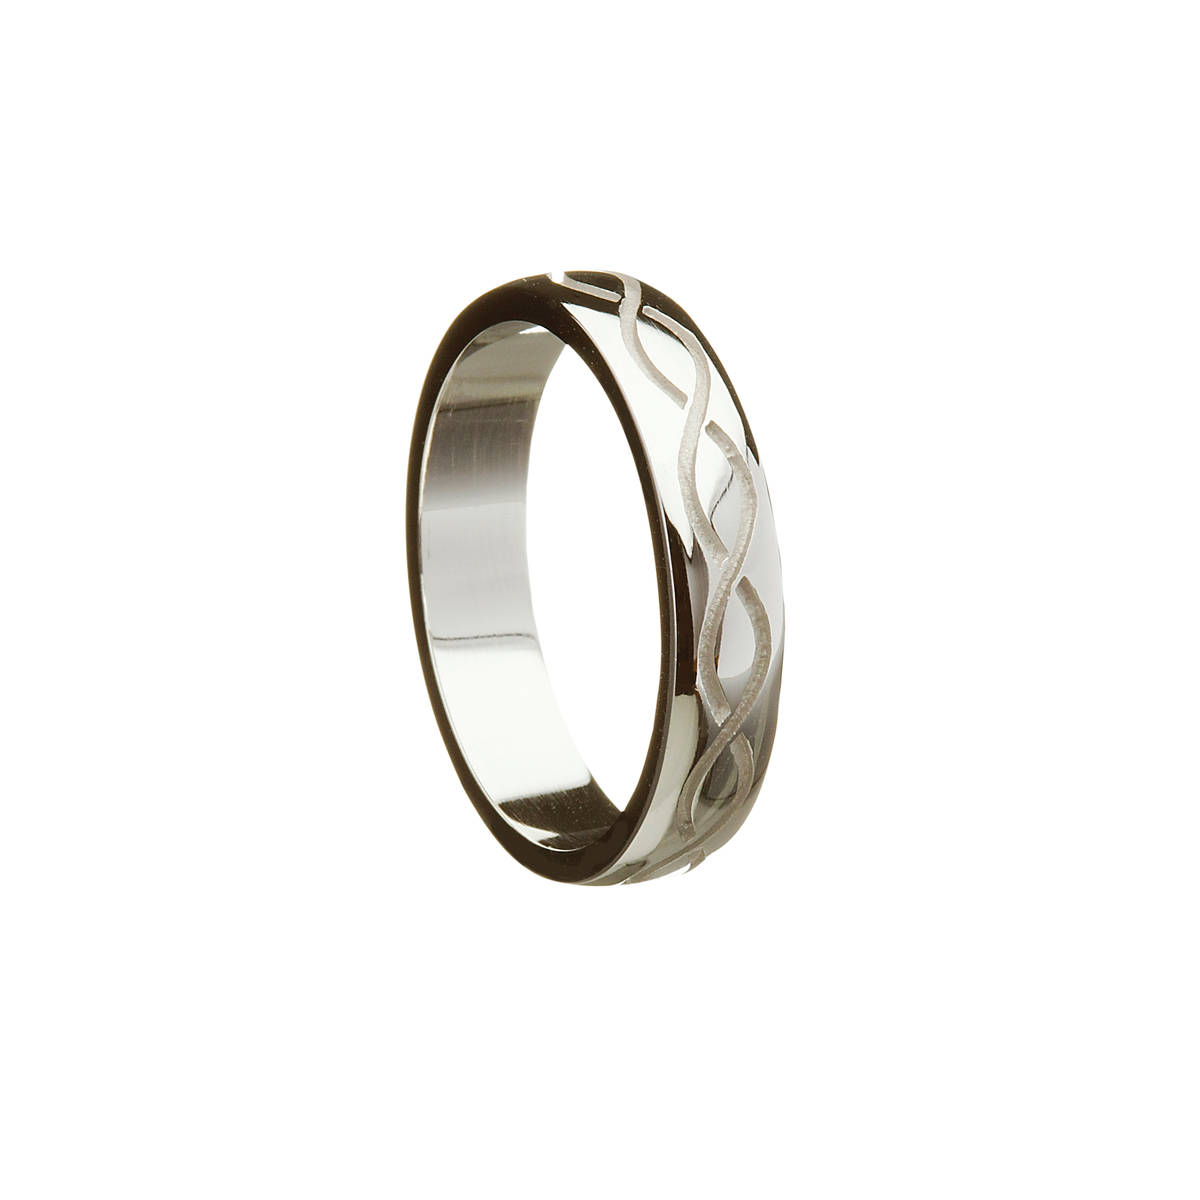 14ct White Gold Gents Celtic Weave Wedding Band  with a recessed 2 row Celtic twist design.  Width: 4.9 mm